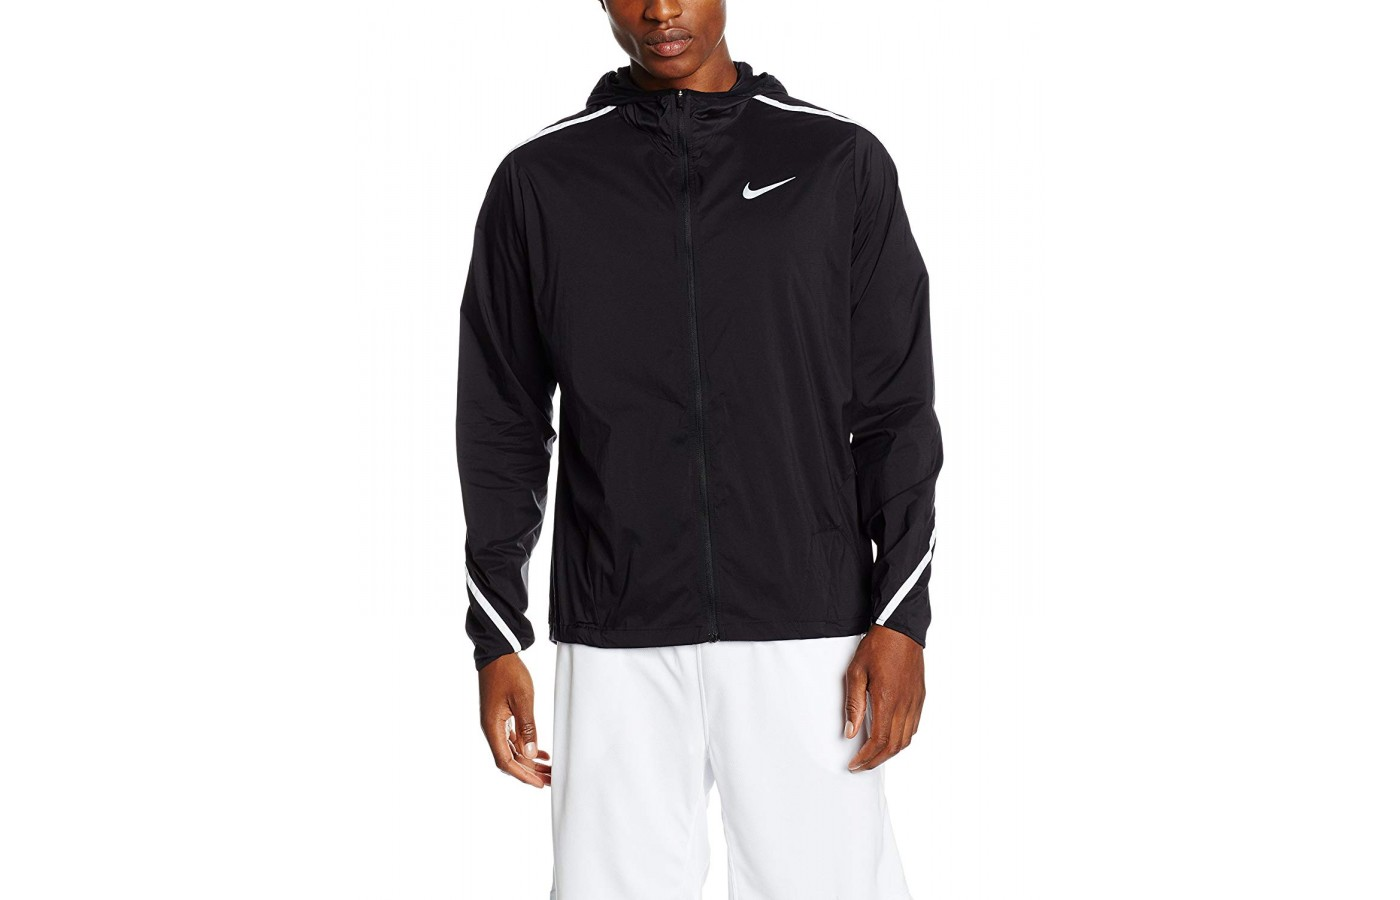 Nike Impossibly Light Jacket front